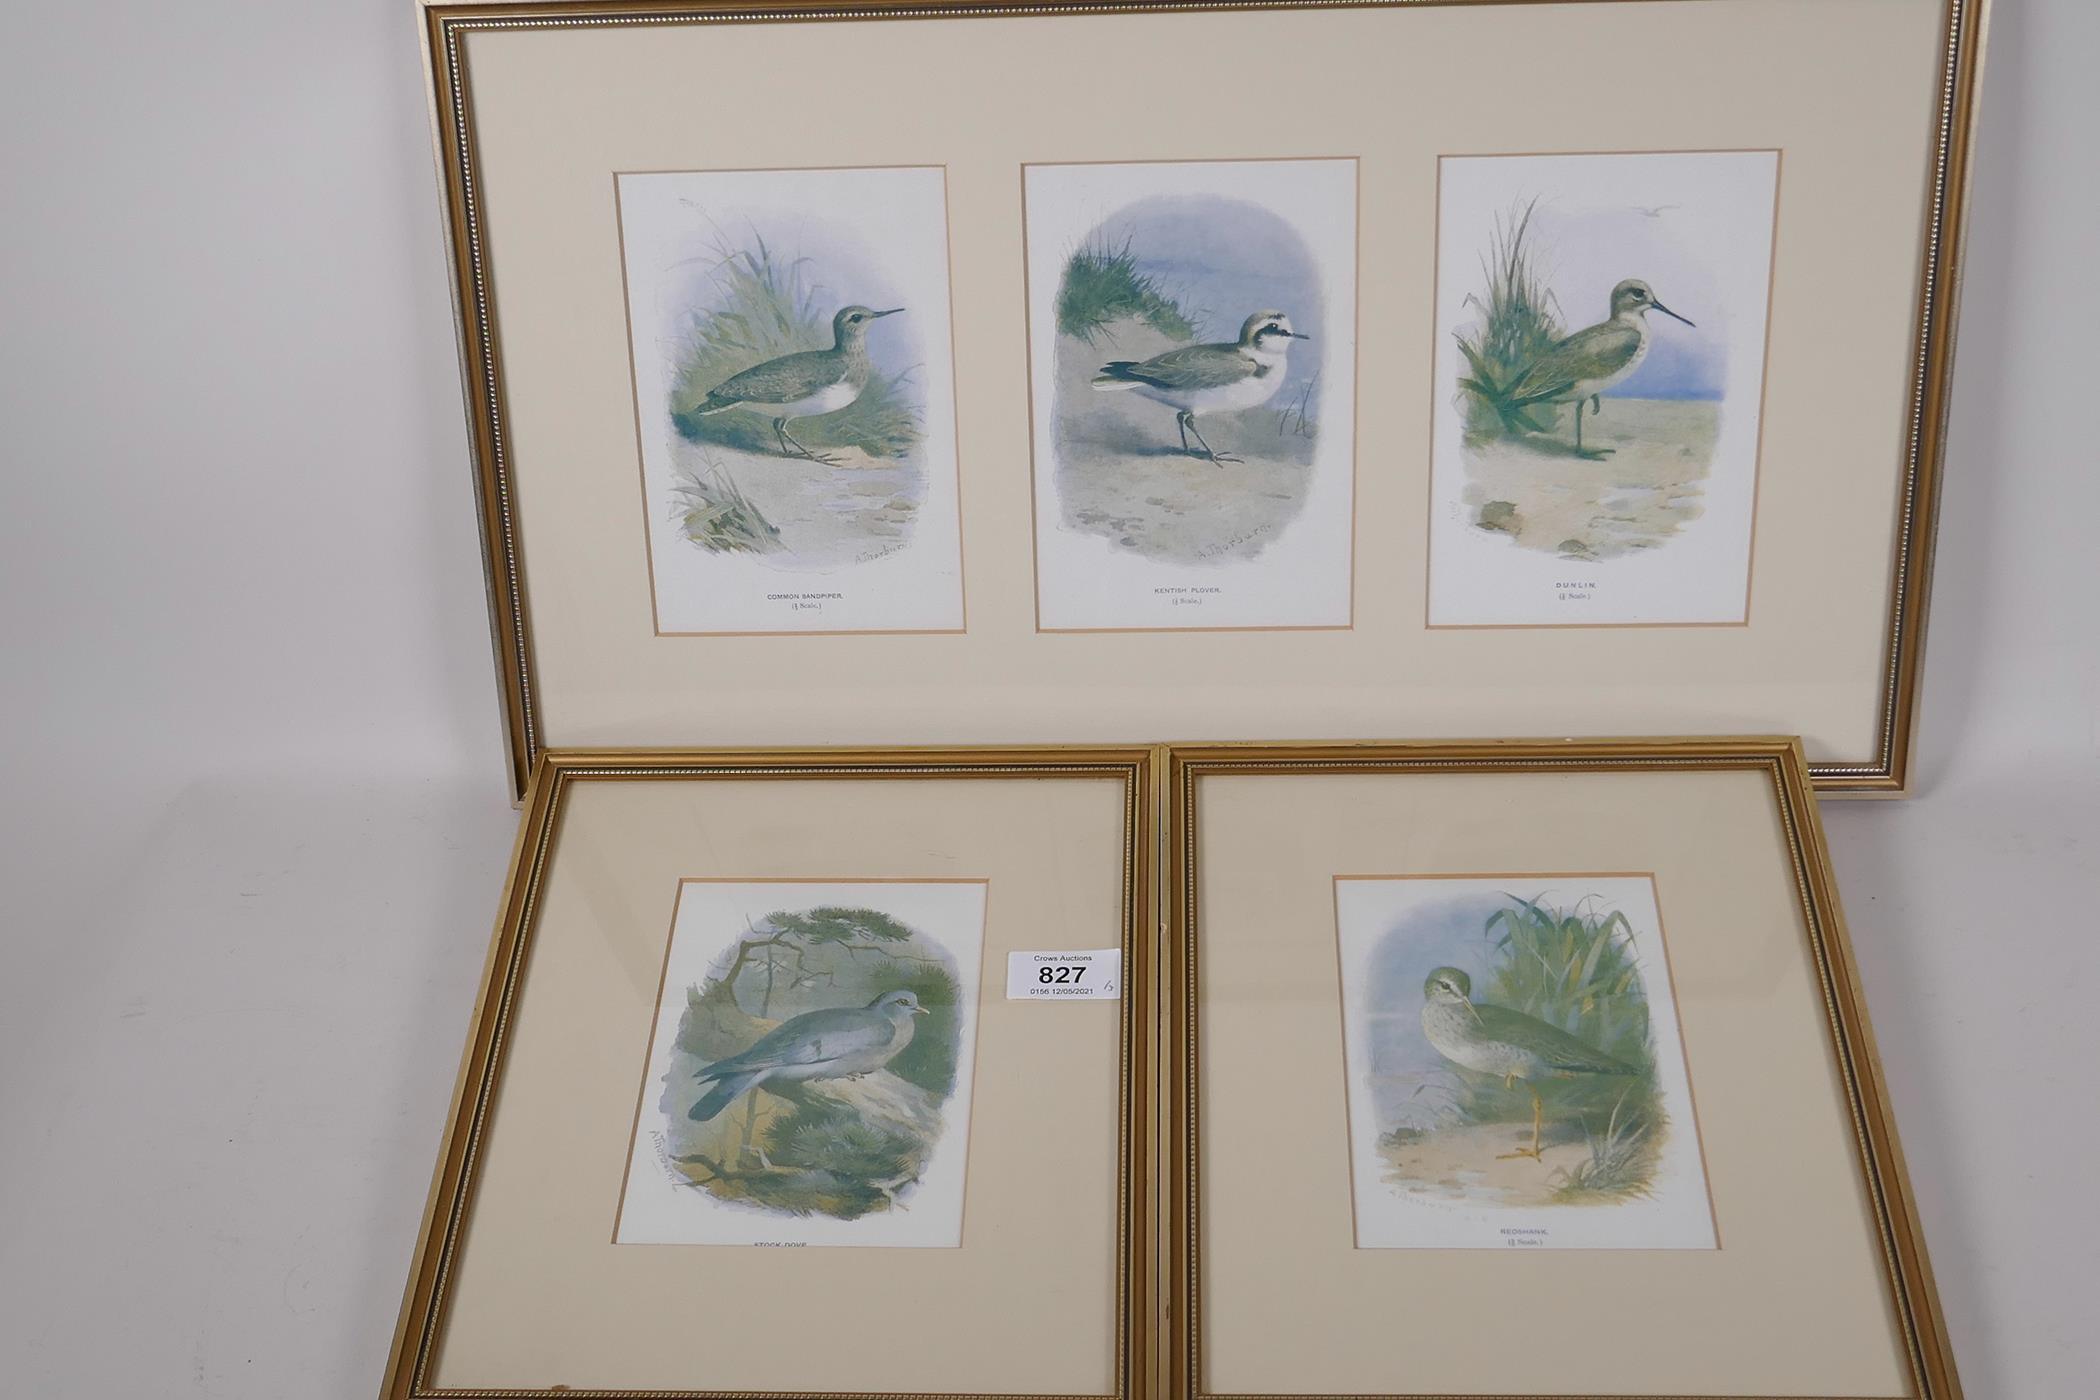 Five coloured prints of British birds after Archibald Thorburn, 'Common sandpiper', Kentish plover',